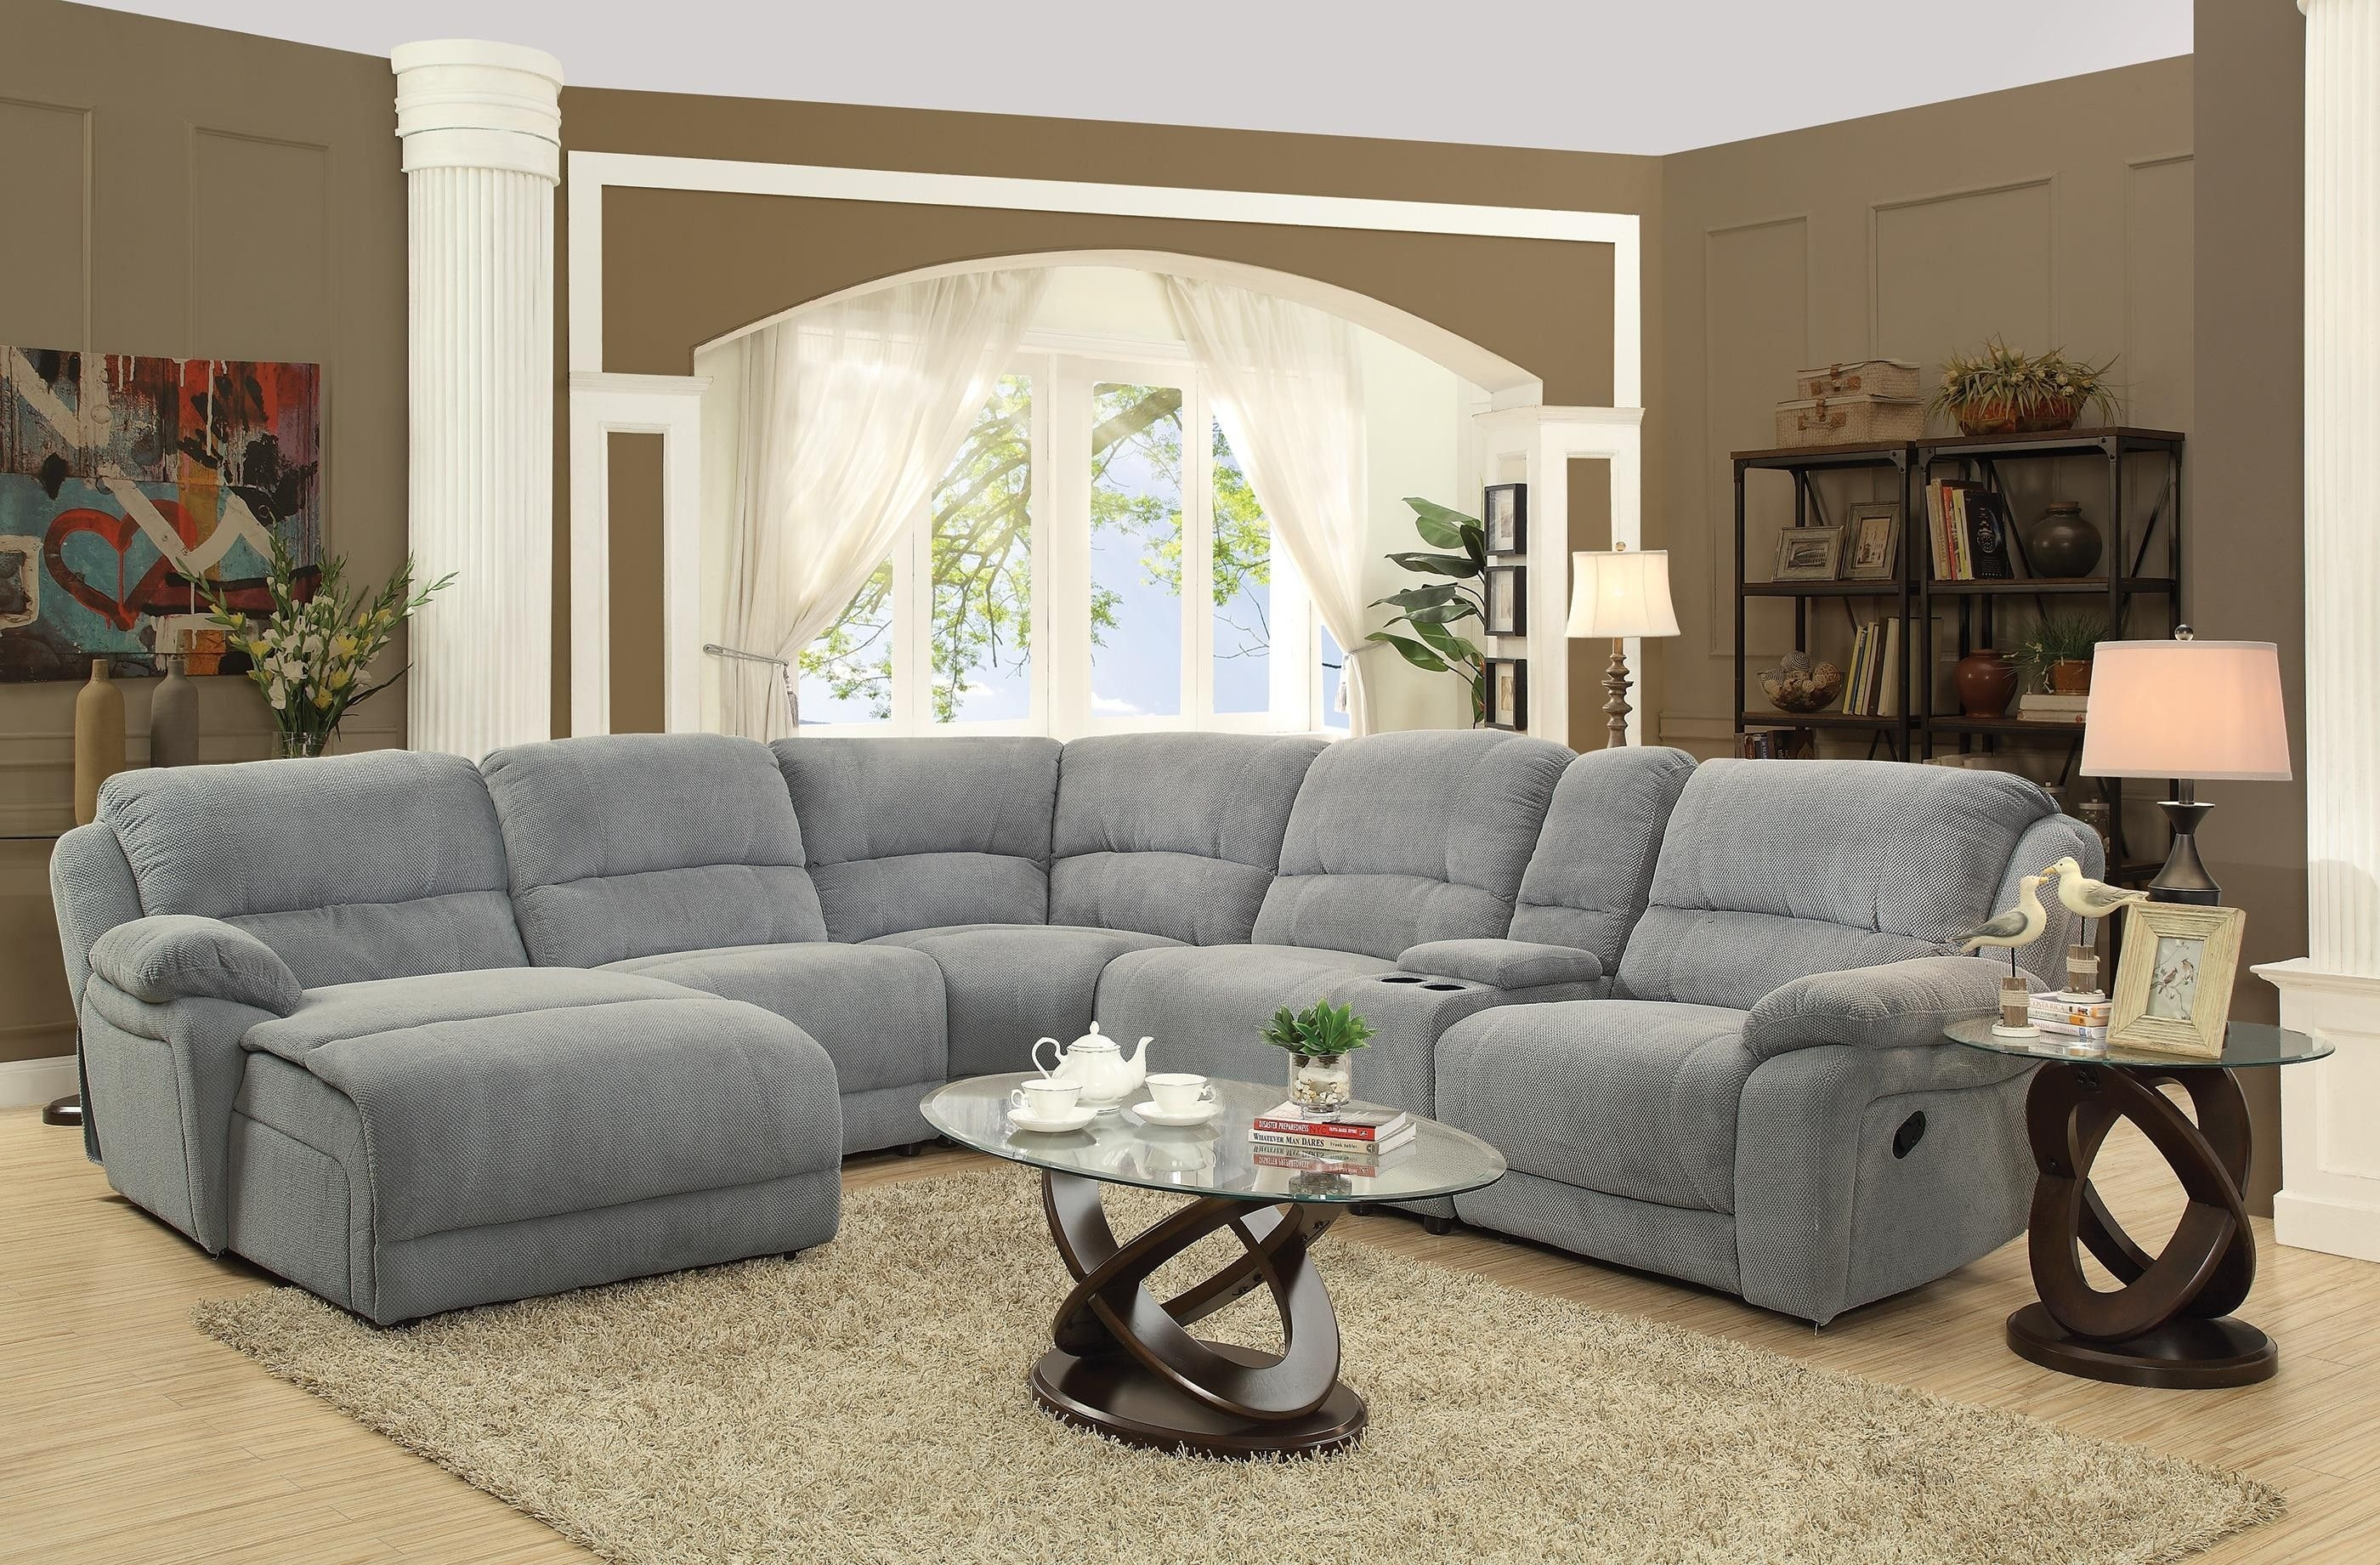 6 Piece Reclining Sectional Sofa | Baci Living Room Inside Denali Charcoal Grey 6 Piece Reclining Sectionals With 2 Power Headrests (Photo 21 of 25)